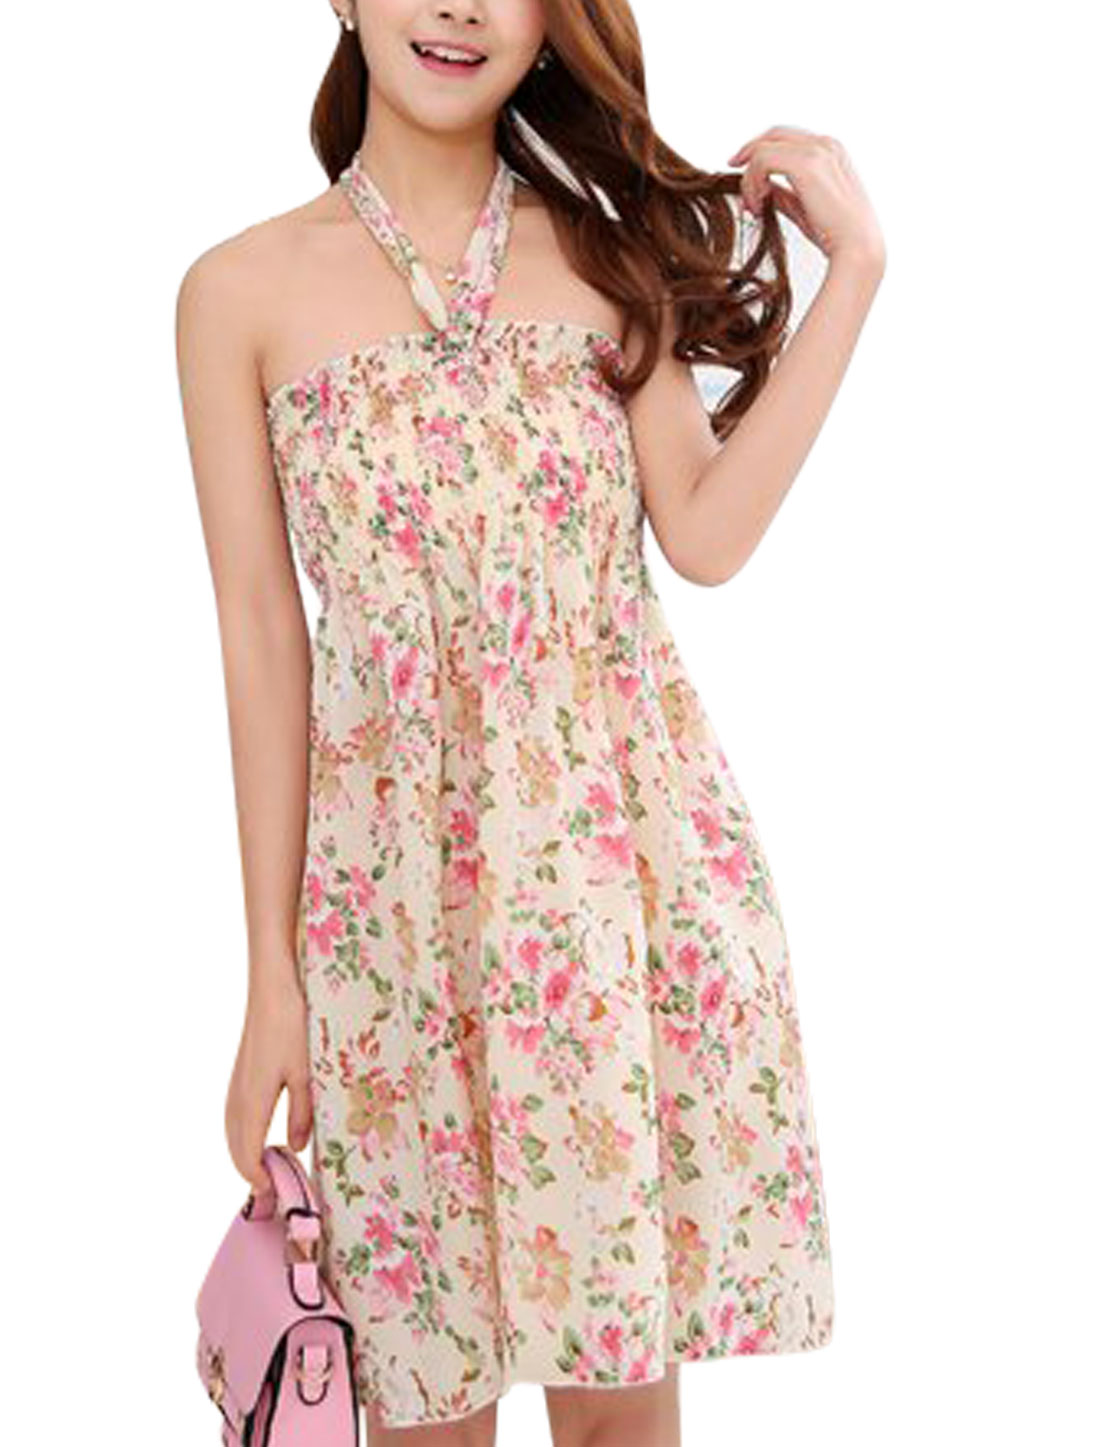 Lady Sleeveless Floral Prints Unlined Smocked Bust A-Line Dresses Beige S